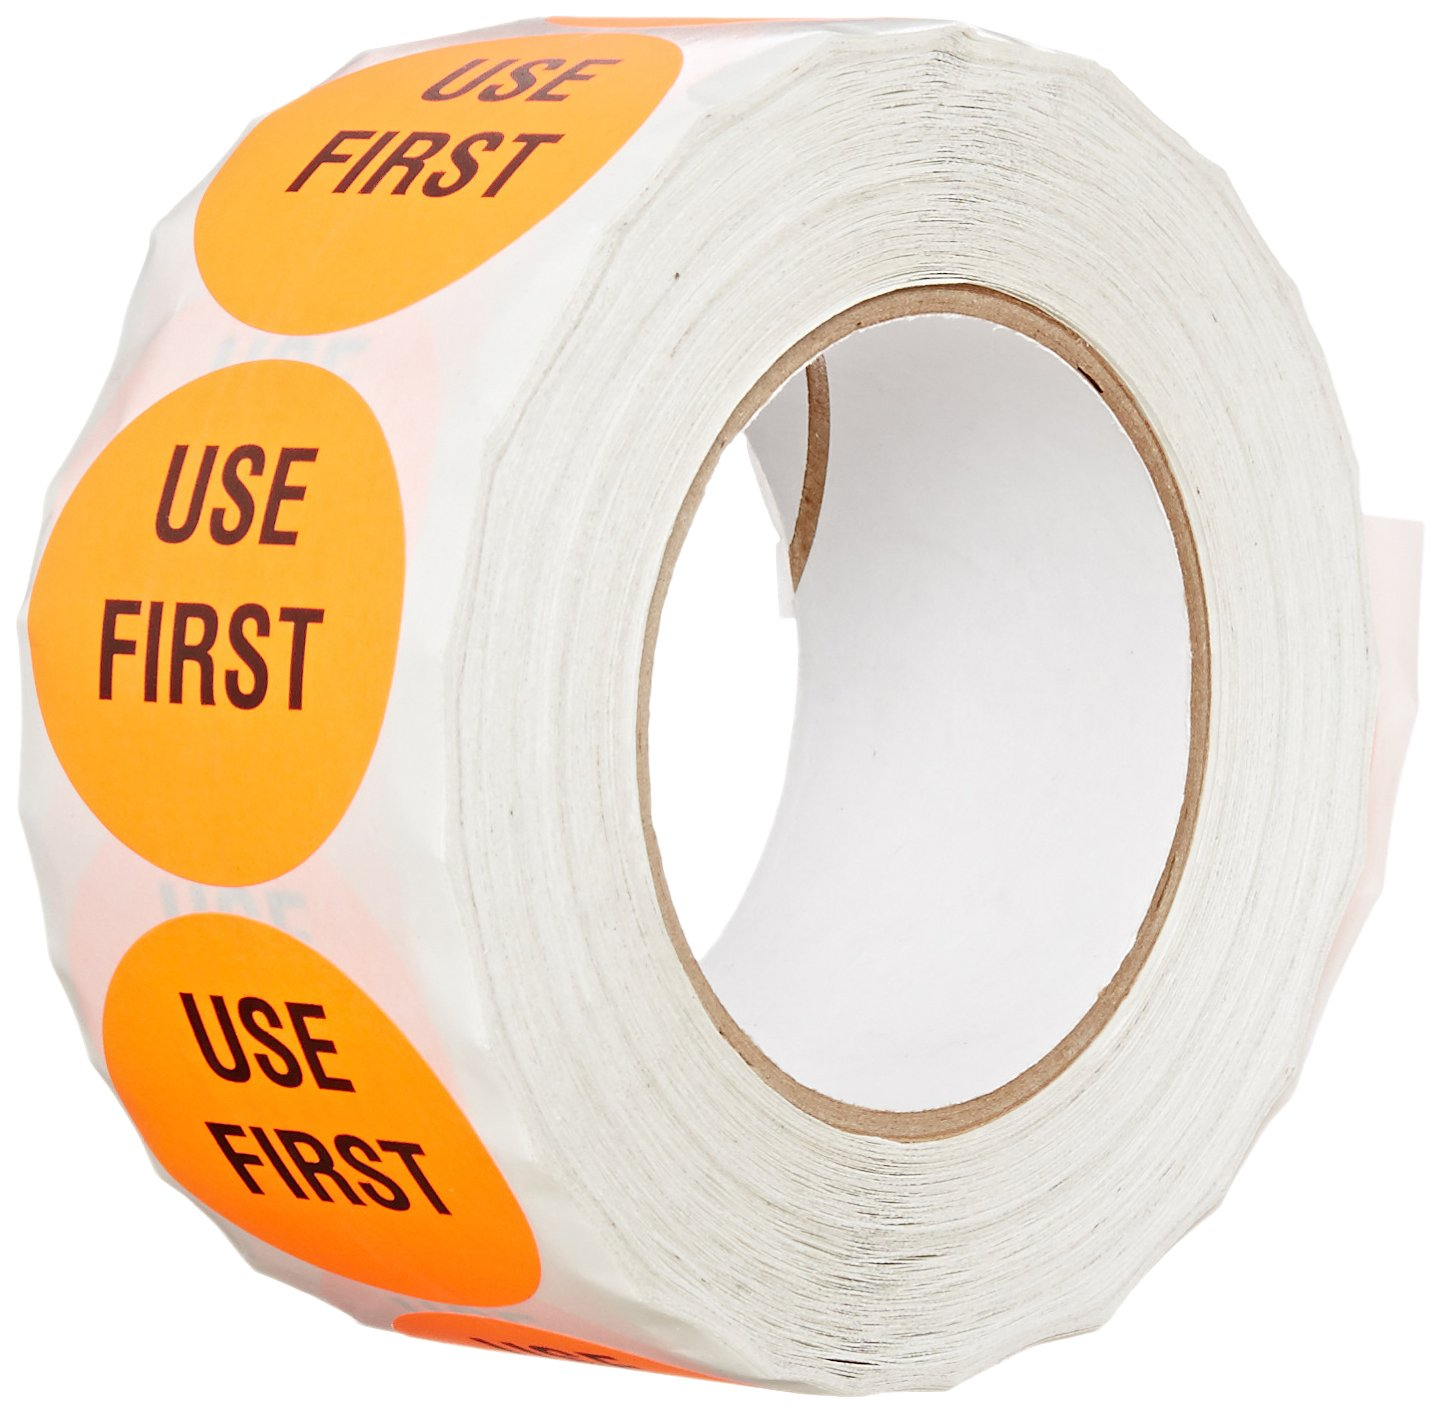 """TapeCase INVLBL-037 """"Use First"""" Inventory Control Label in Red [Pack of 1000] - 2 in. Circular Label for Marking, Color Coding, Notating Inventory Items"""